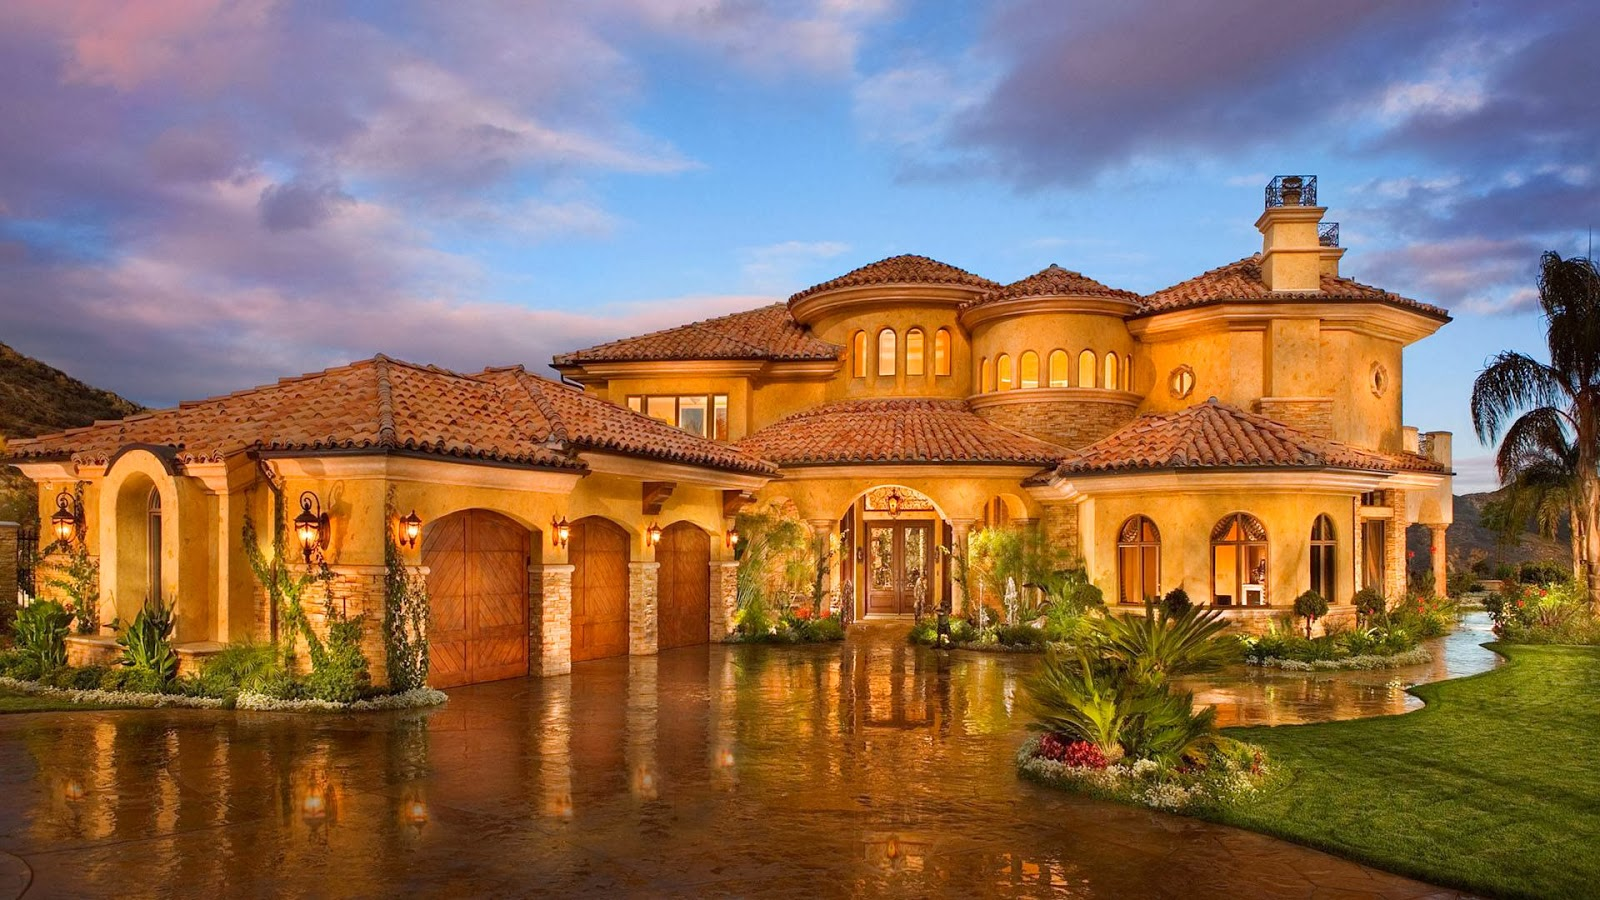 multi_million_dollar_mega_mansion_backyard_pool_landscape_elegant_luxury_listing_frontyard_elegant_luxury_homes_builder_construction_.jpg